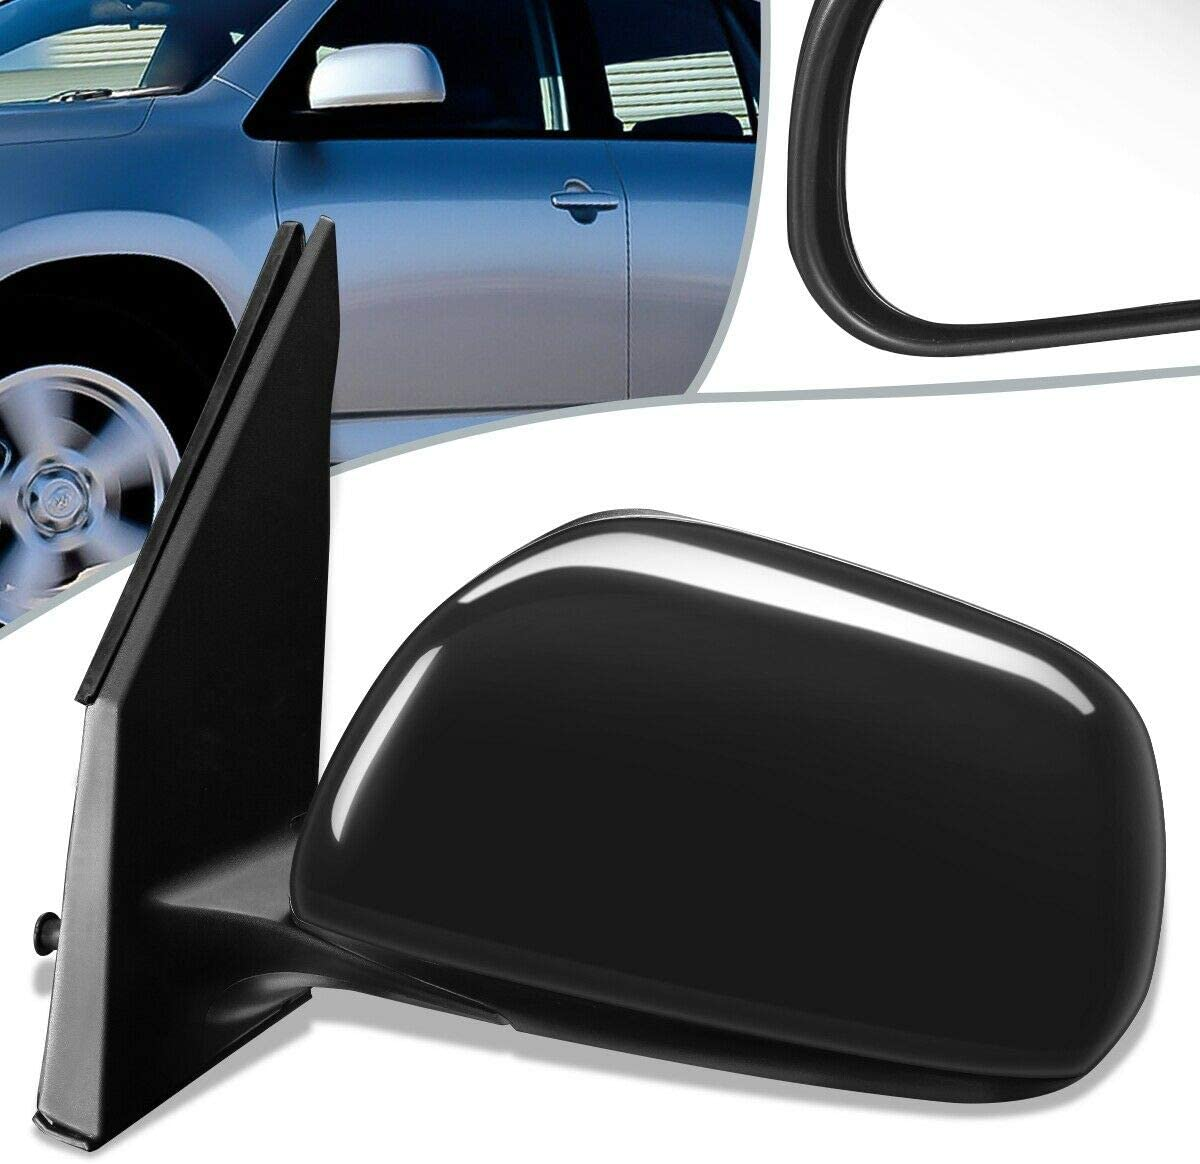 NYI 70% OFF Outlet For Complete Free Shipping Sport Utility OE Style Mirror Lef Powered Door Side View